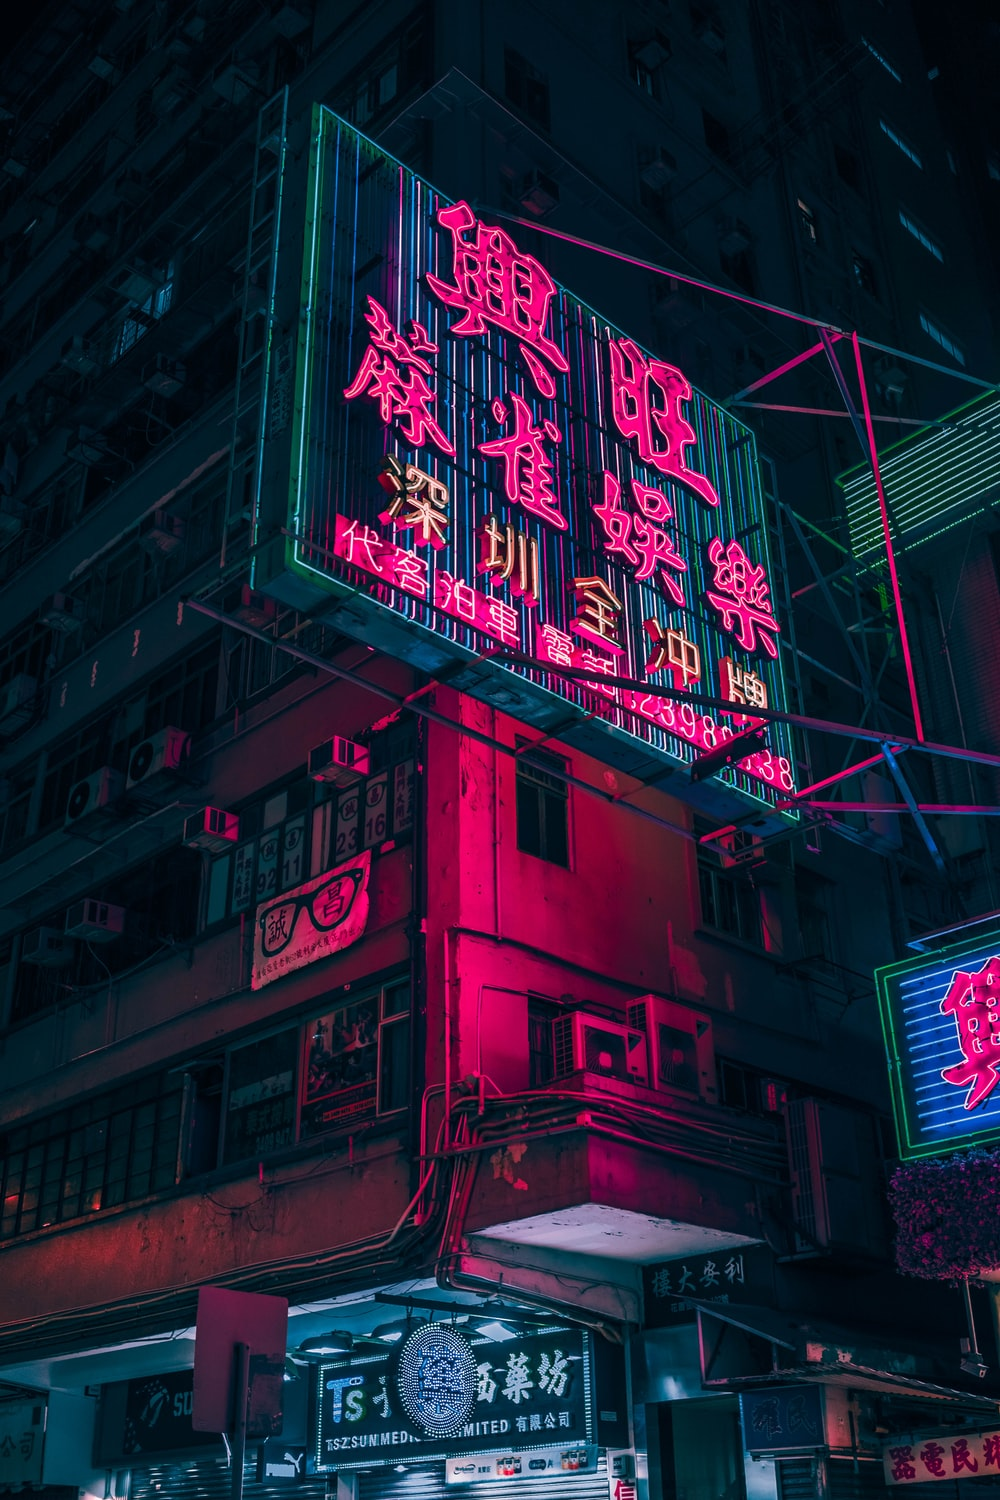 City Aesthetic Pictures Download Free Images On Unsplash